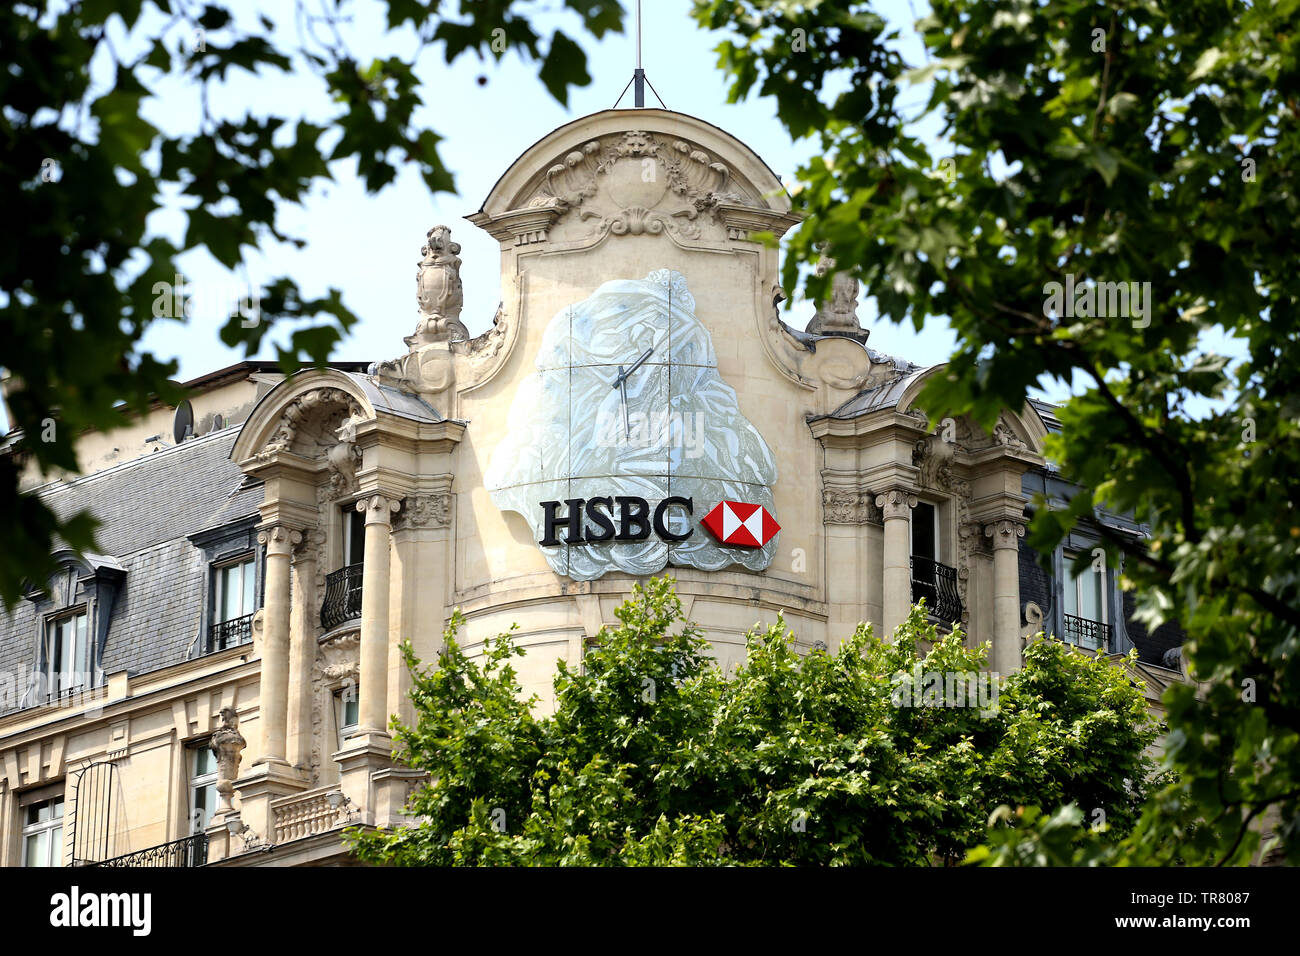 Hsbc France Stock Photos & Hsbc France Stock Images - Alamy